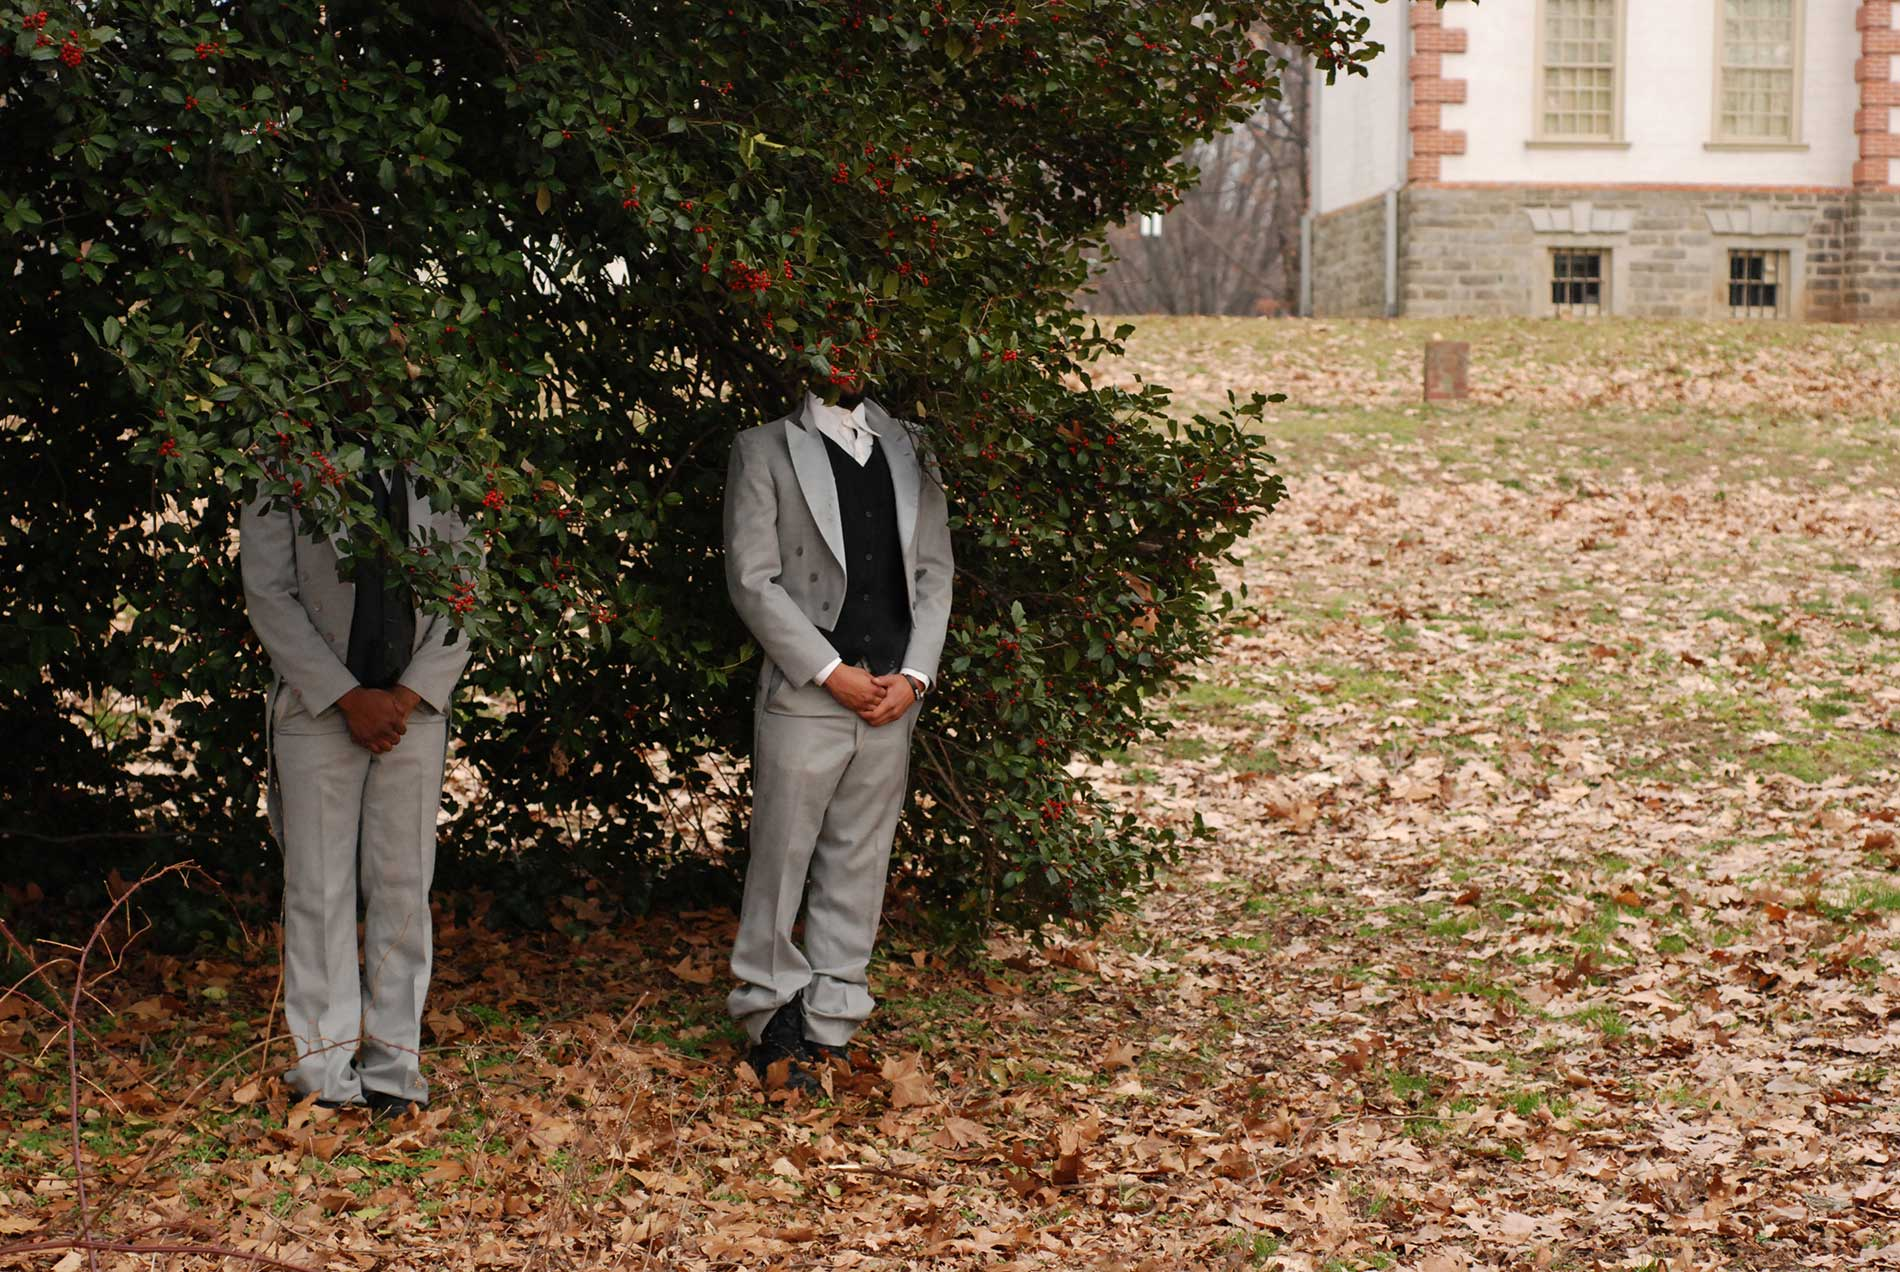 Two men in suits stand with their heads covered in a large hedge.